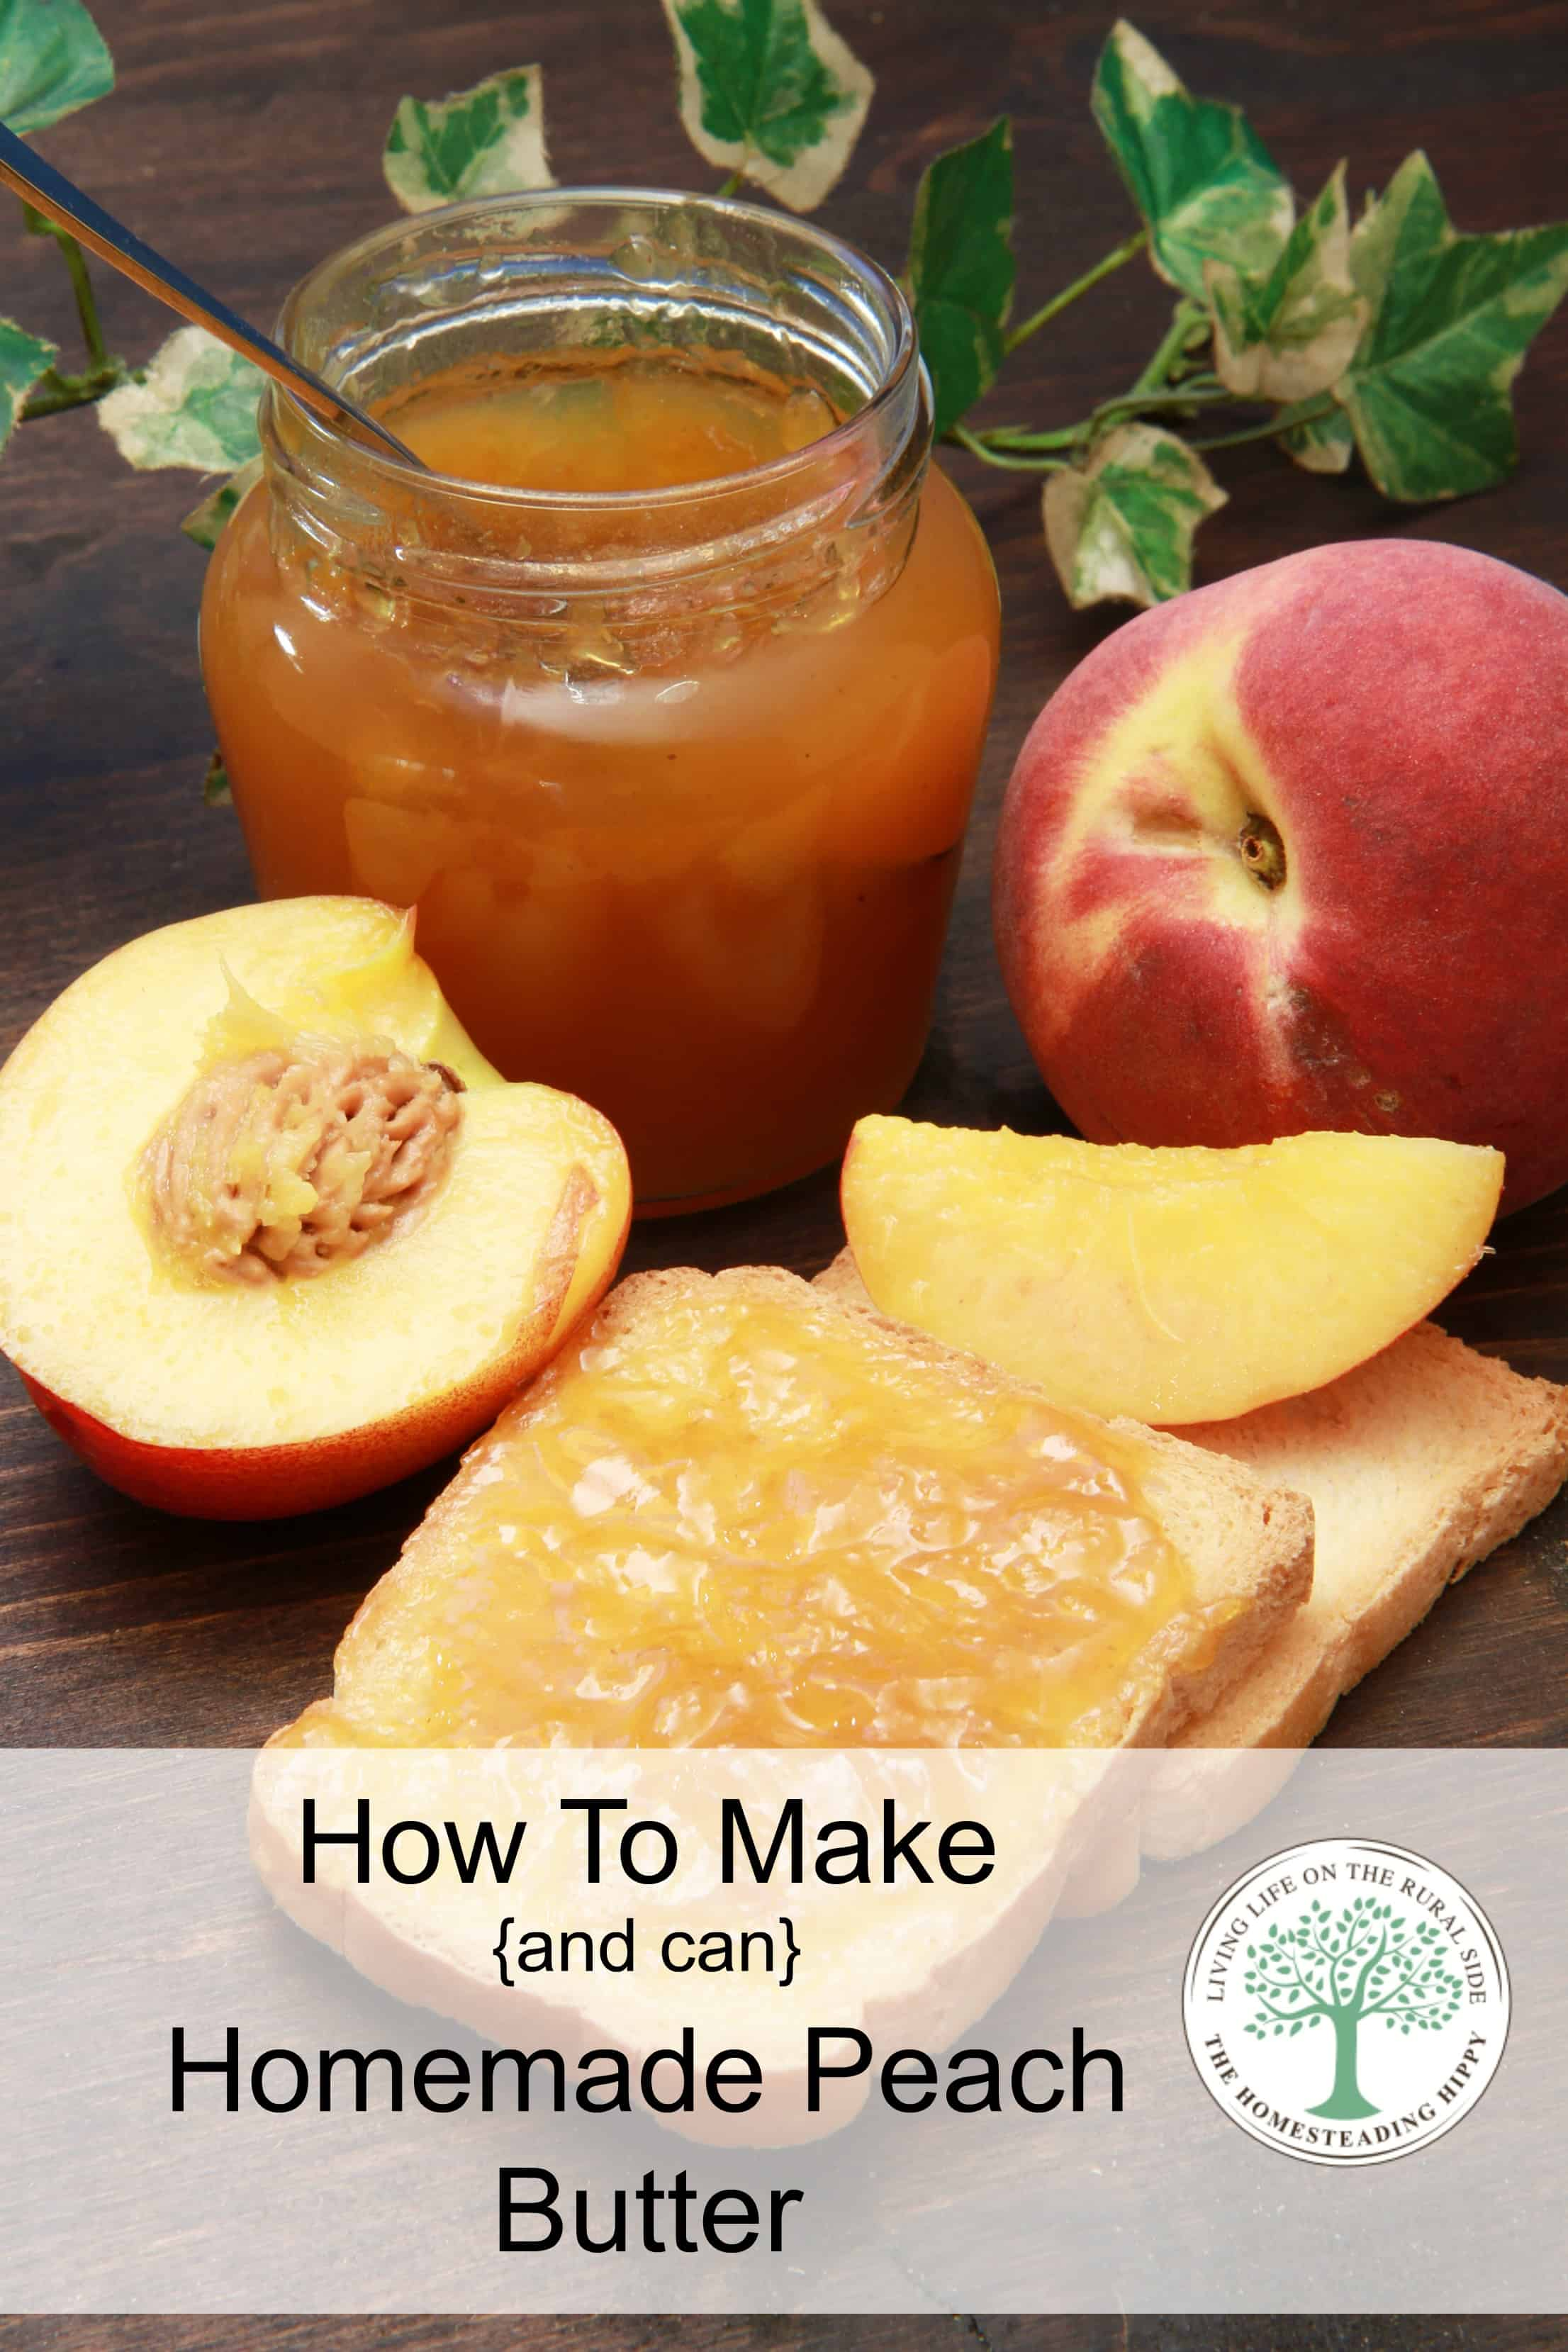 How to make and can homemade peach butter to enjoy the full peach season! The Homesteading Hippy